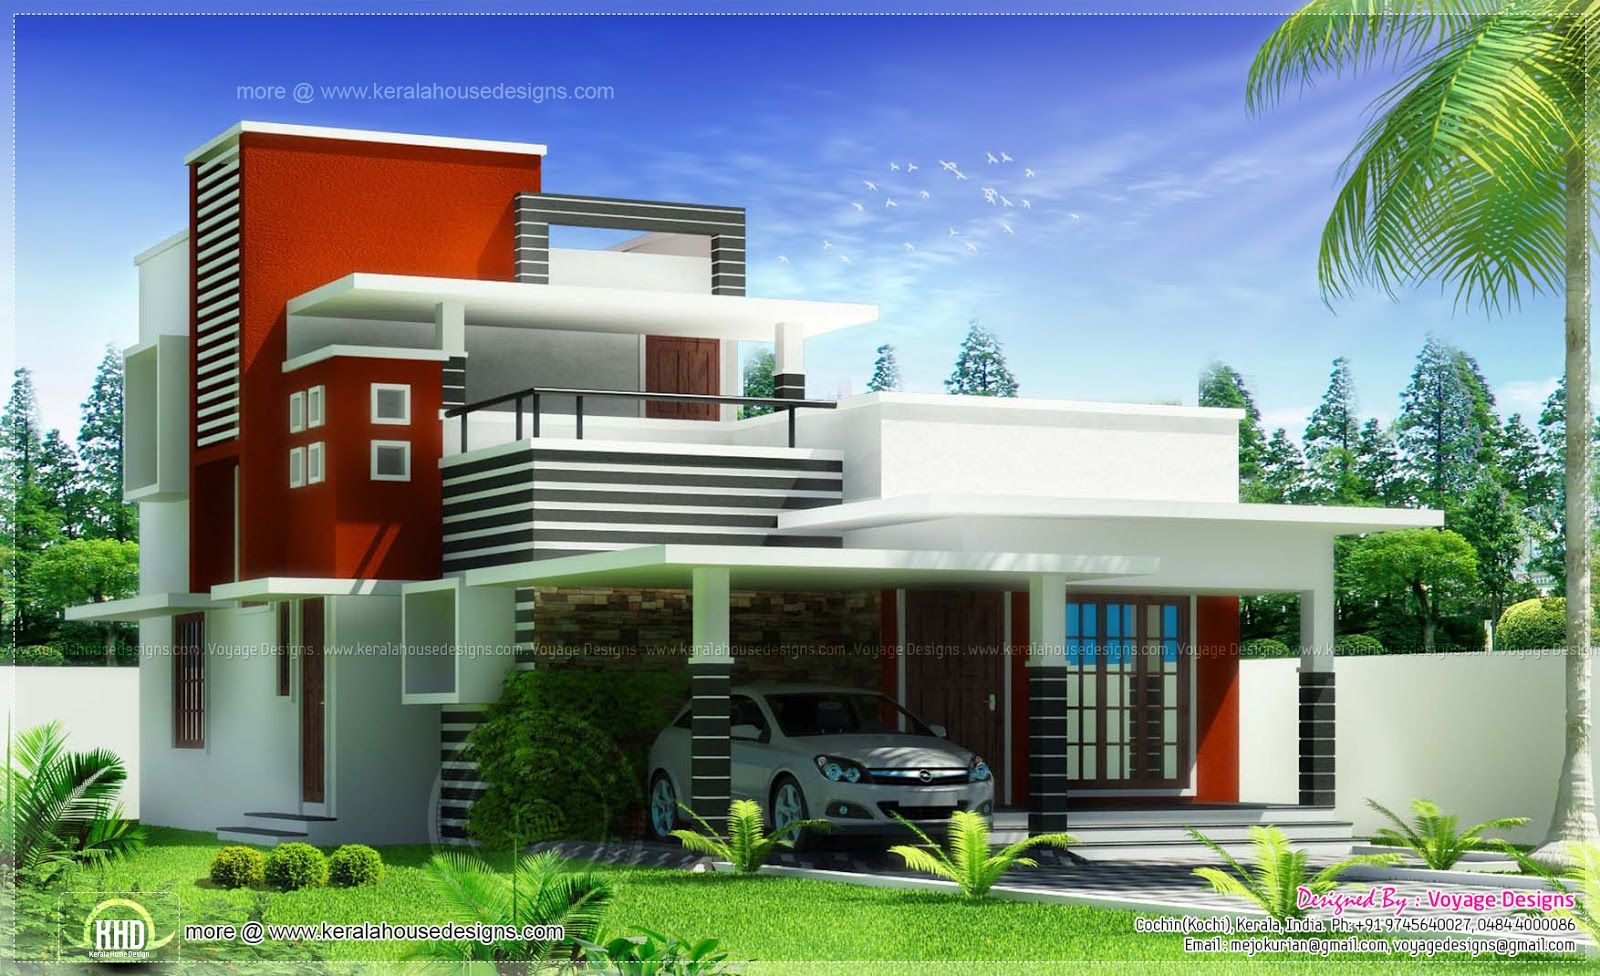 Kerala house designs architecture pinterest kerala for Modern villa house design